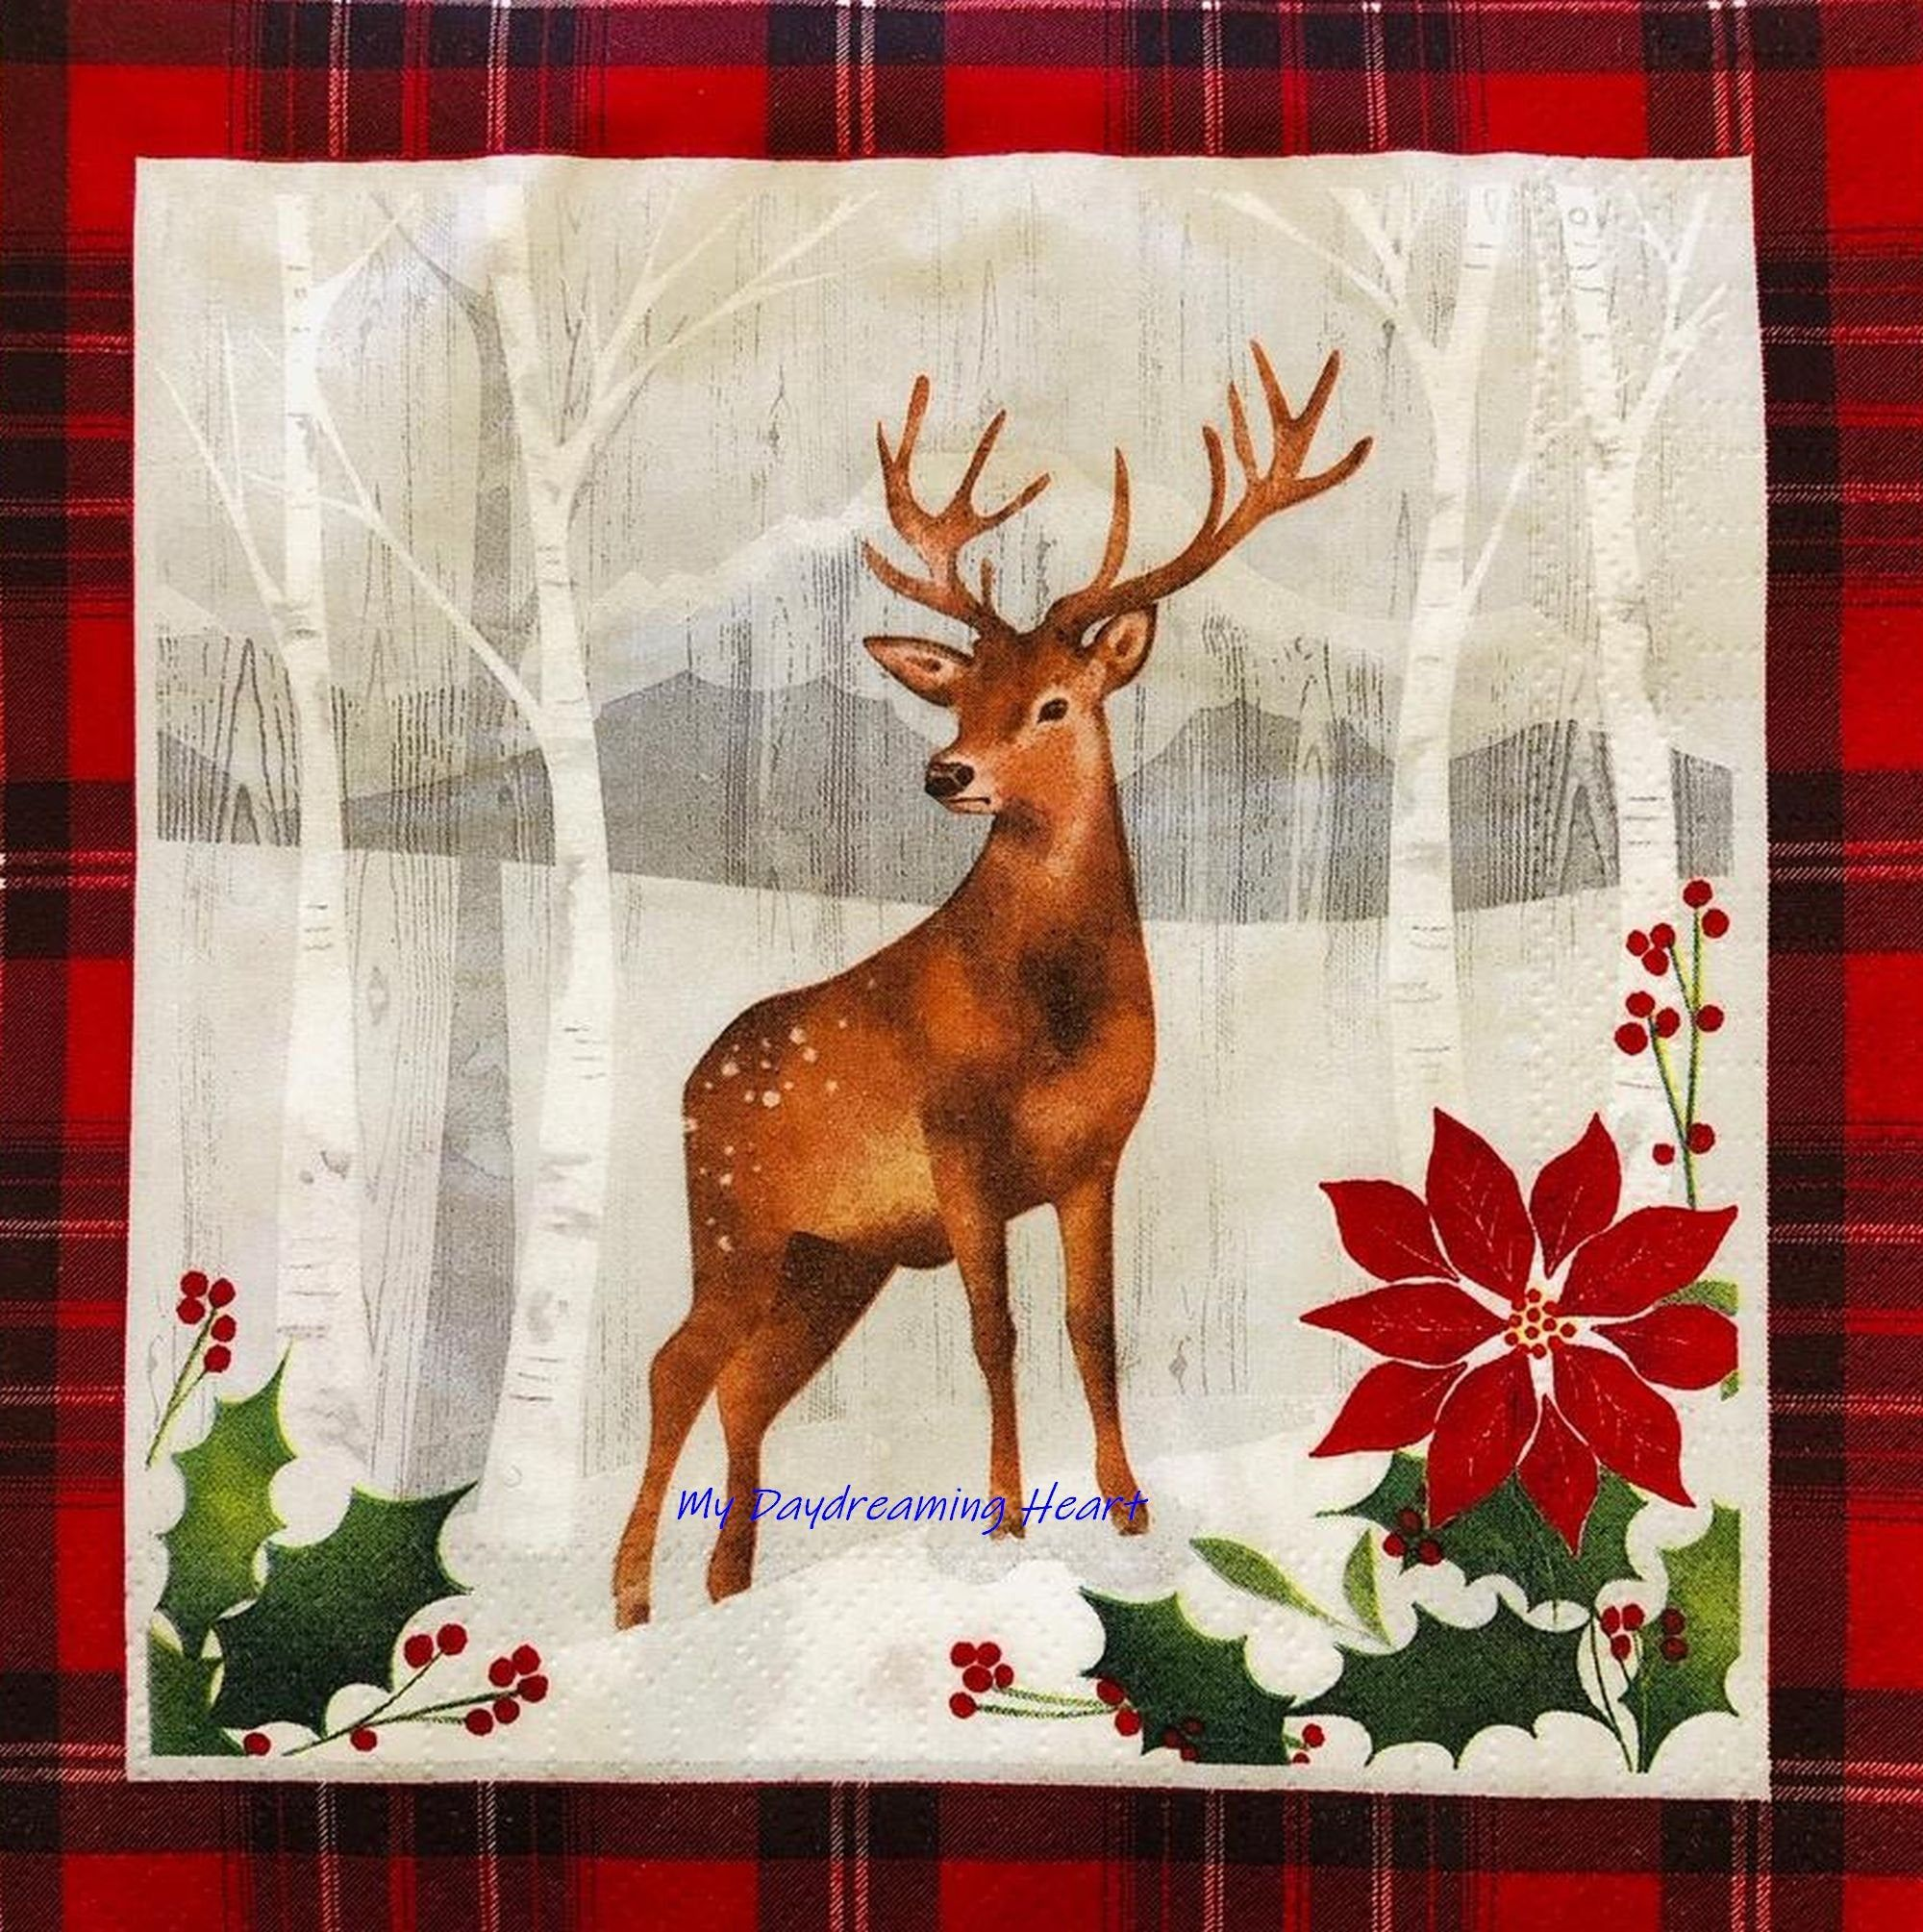 Christmas Deer Decoupage Napkins Outdoor Winter Scene Paper Napkins For Decoupage Birch Trees Poinsettia Holly #papernapkins